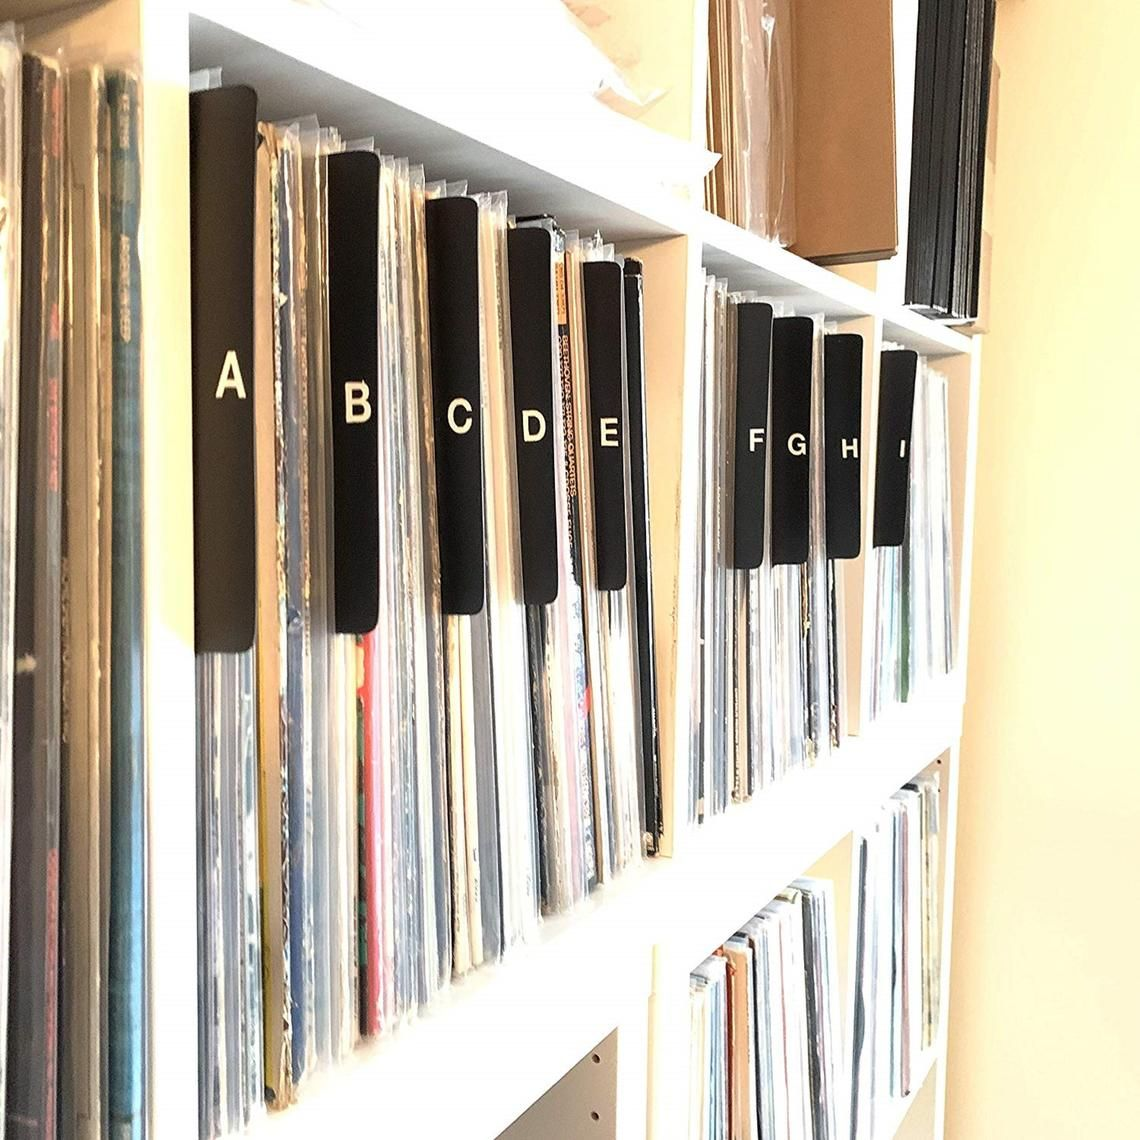 A Z Black Alphabetical Record Dividers Cards 12 Inch 33rpm Etsy In 2020 Record Dividers Vinyl Record Storage Record Album Storage